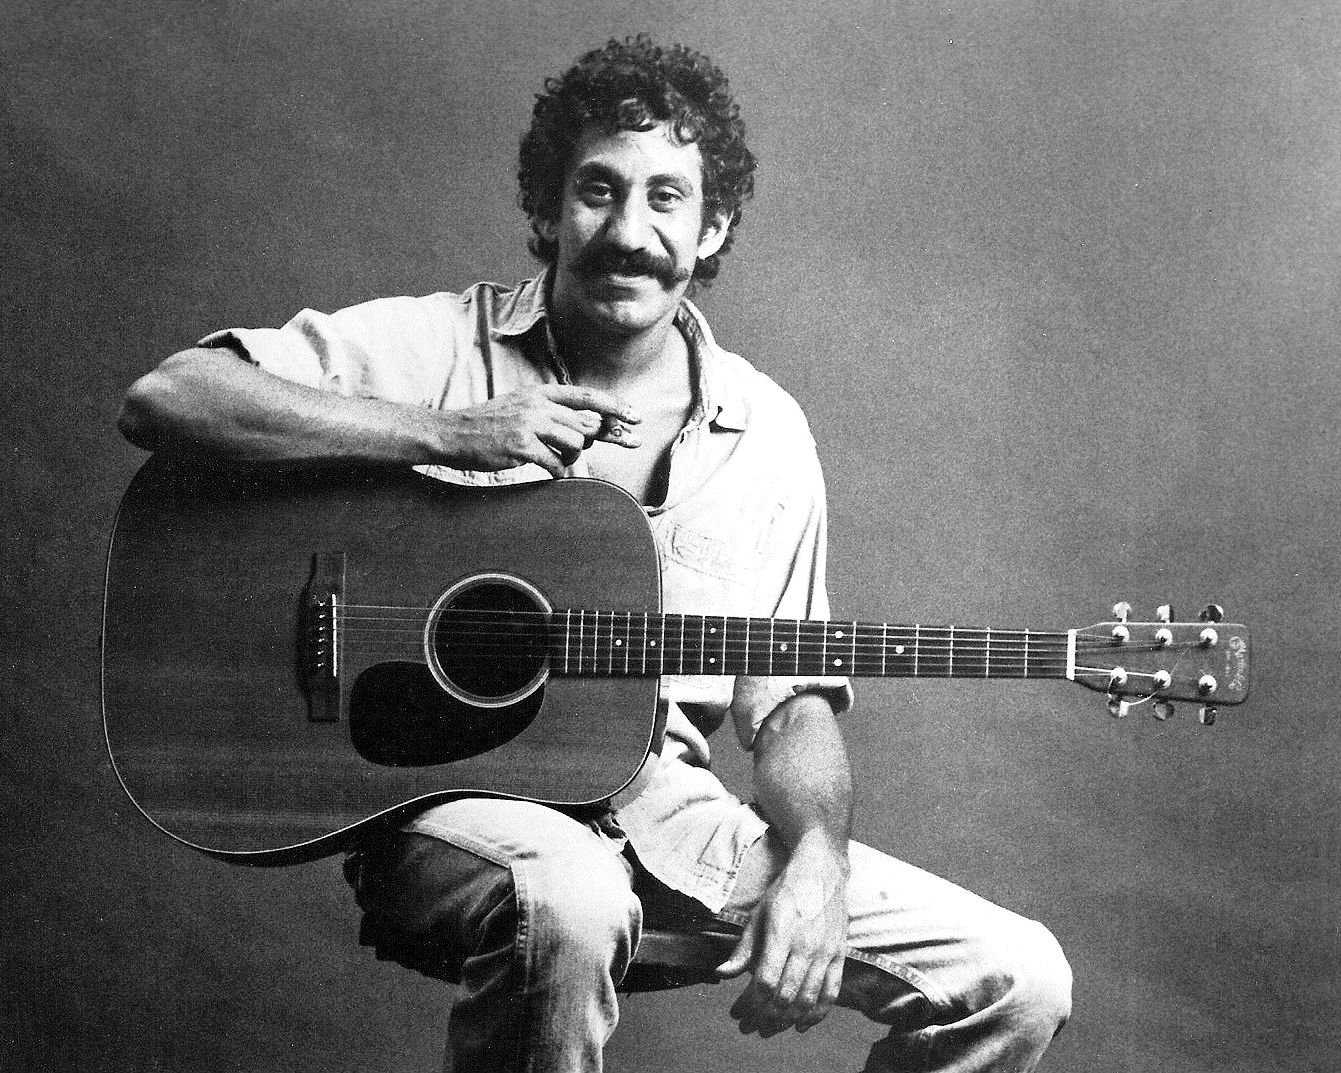 JIM CROCE MUSICIAN SINGER / SONGWRITER - 8X10 PUBLICITY PHOTO (ZY-455)